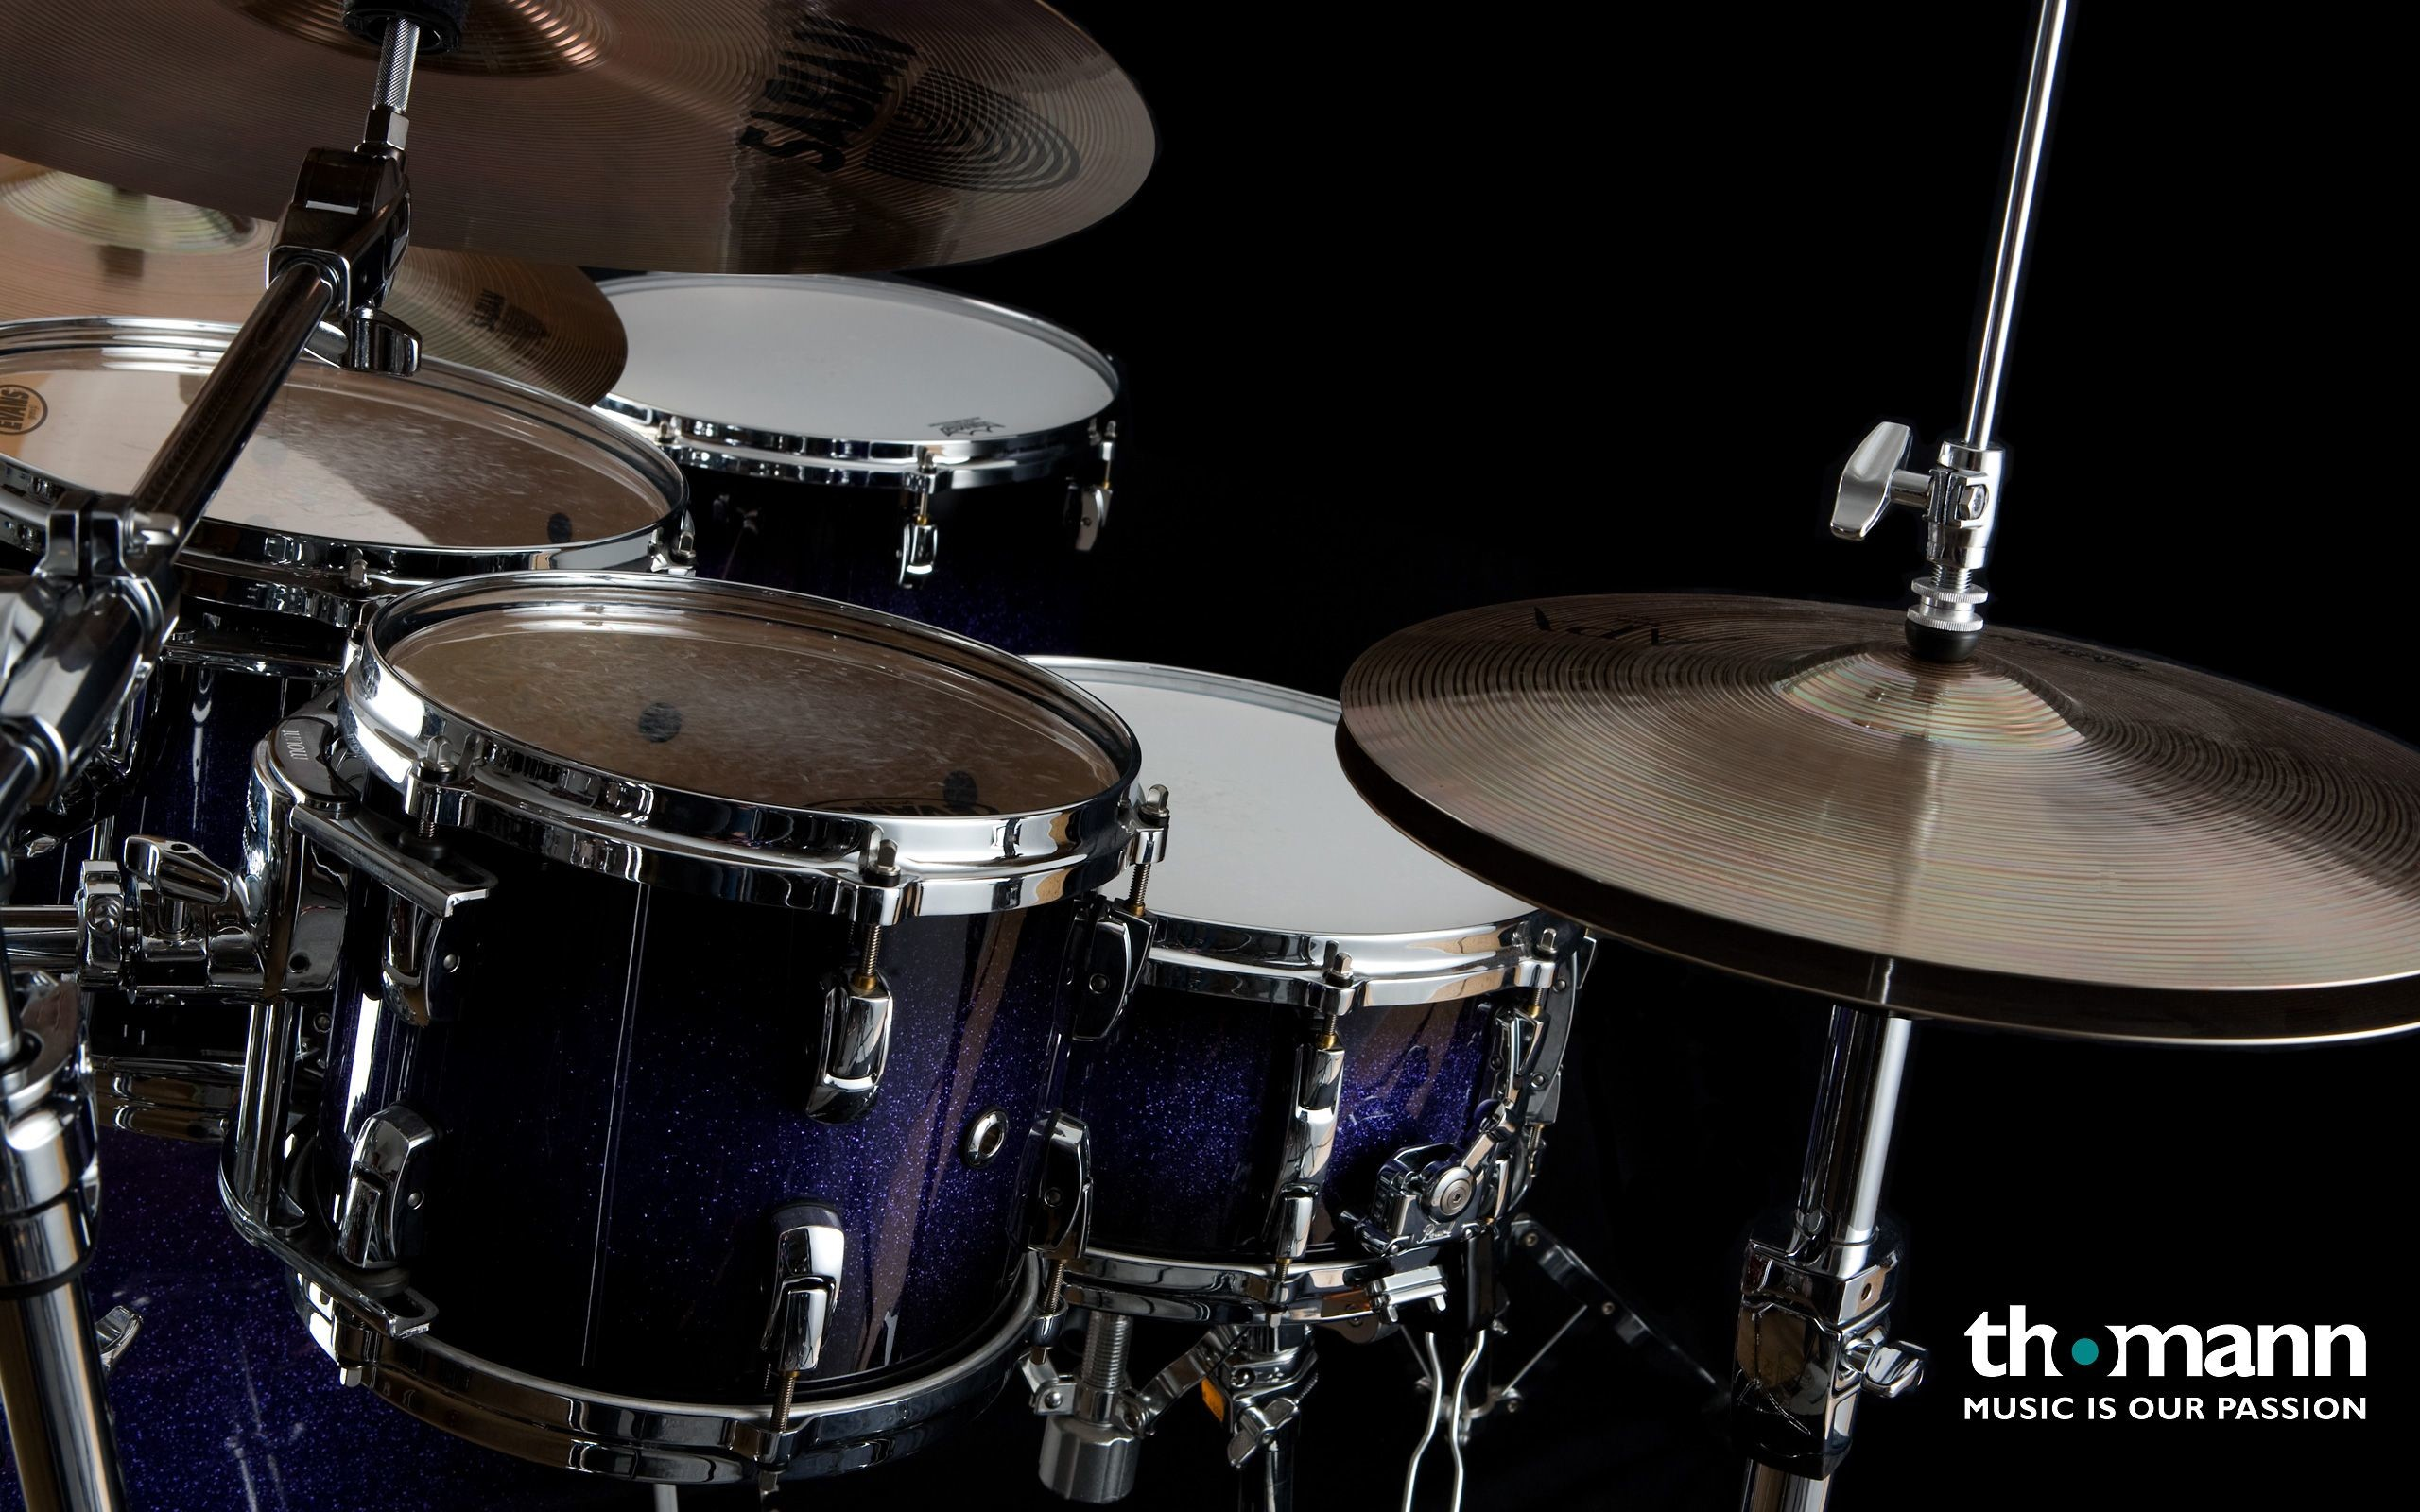 Res: 2560x1600, drums-full-hd-wallpaper-for-desktop-background-download-